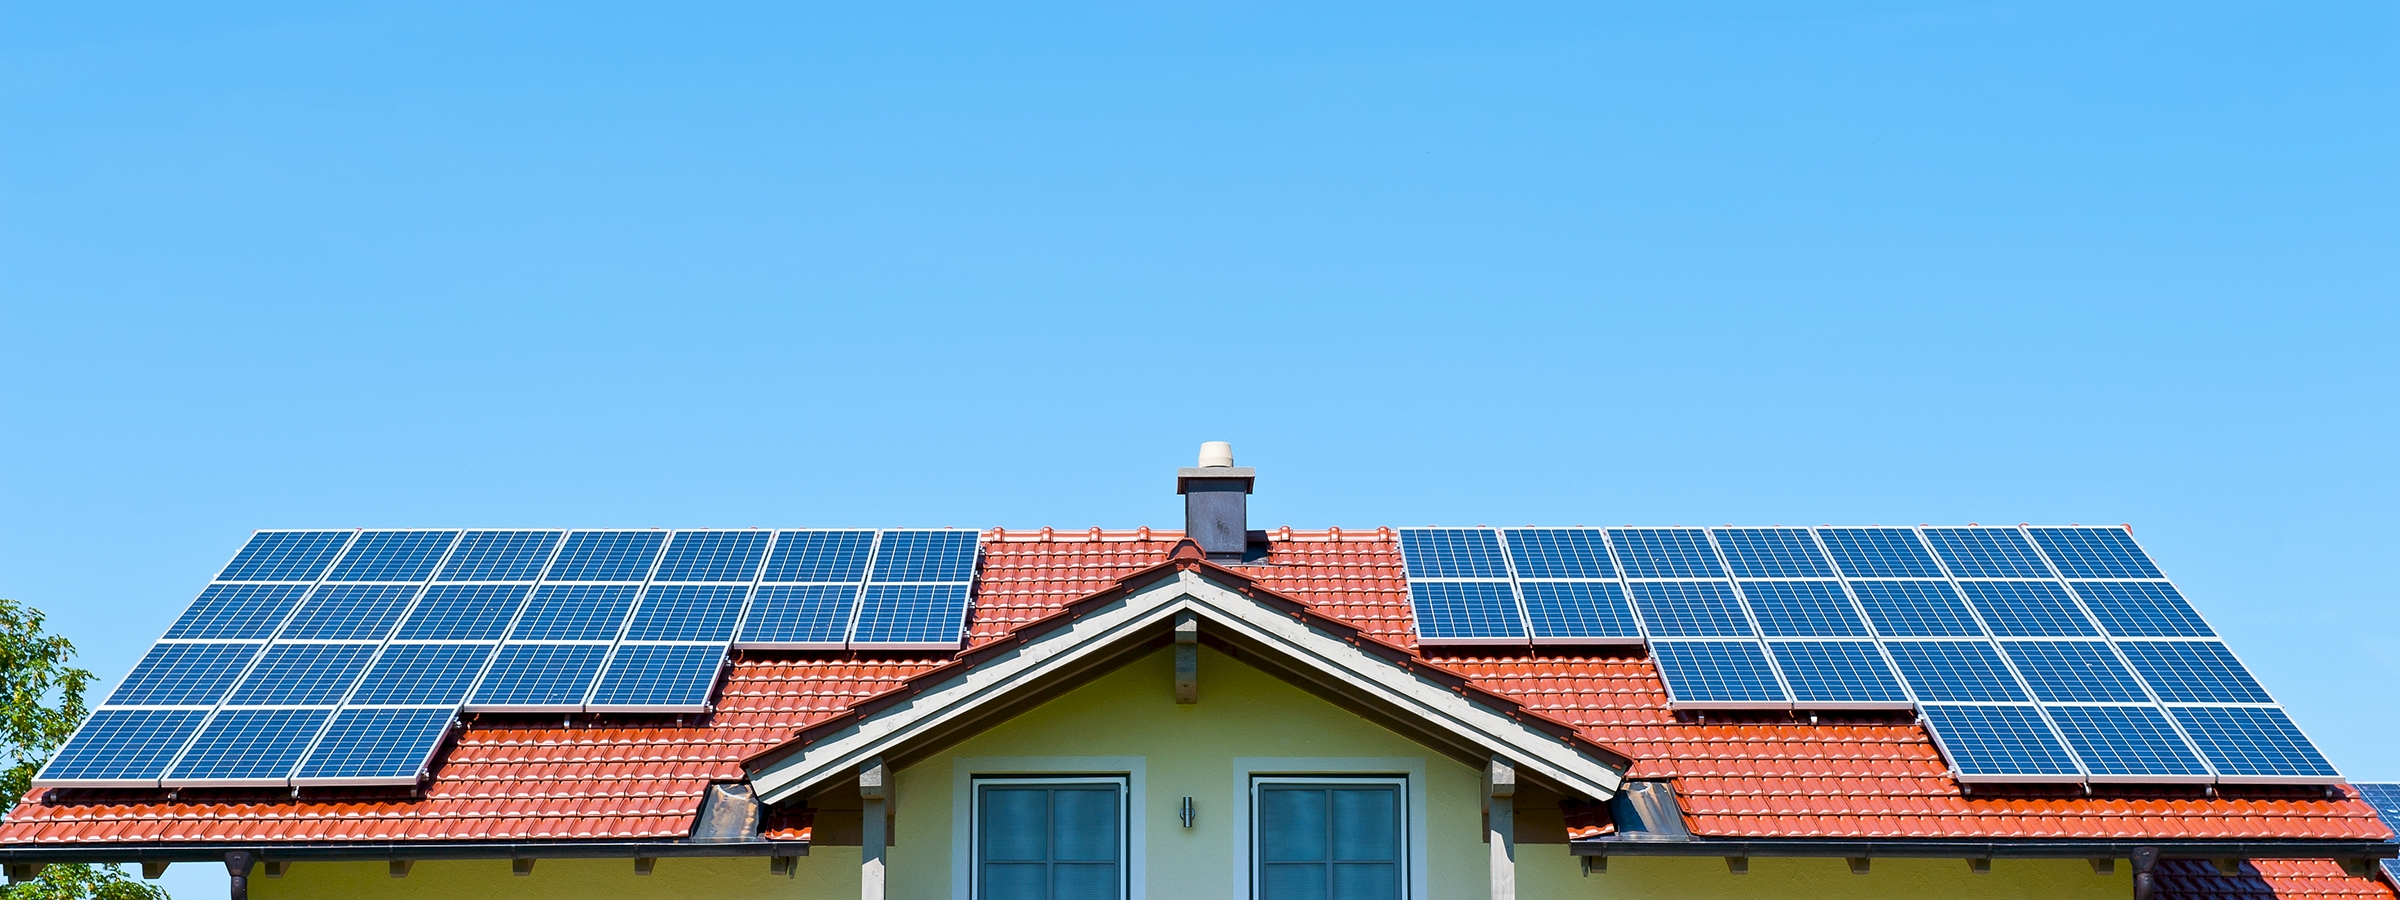 Residential Solar Tax Credits – What You Should Know Before Filing in Massachusetts